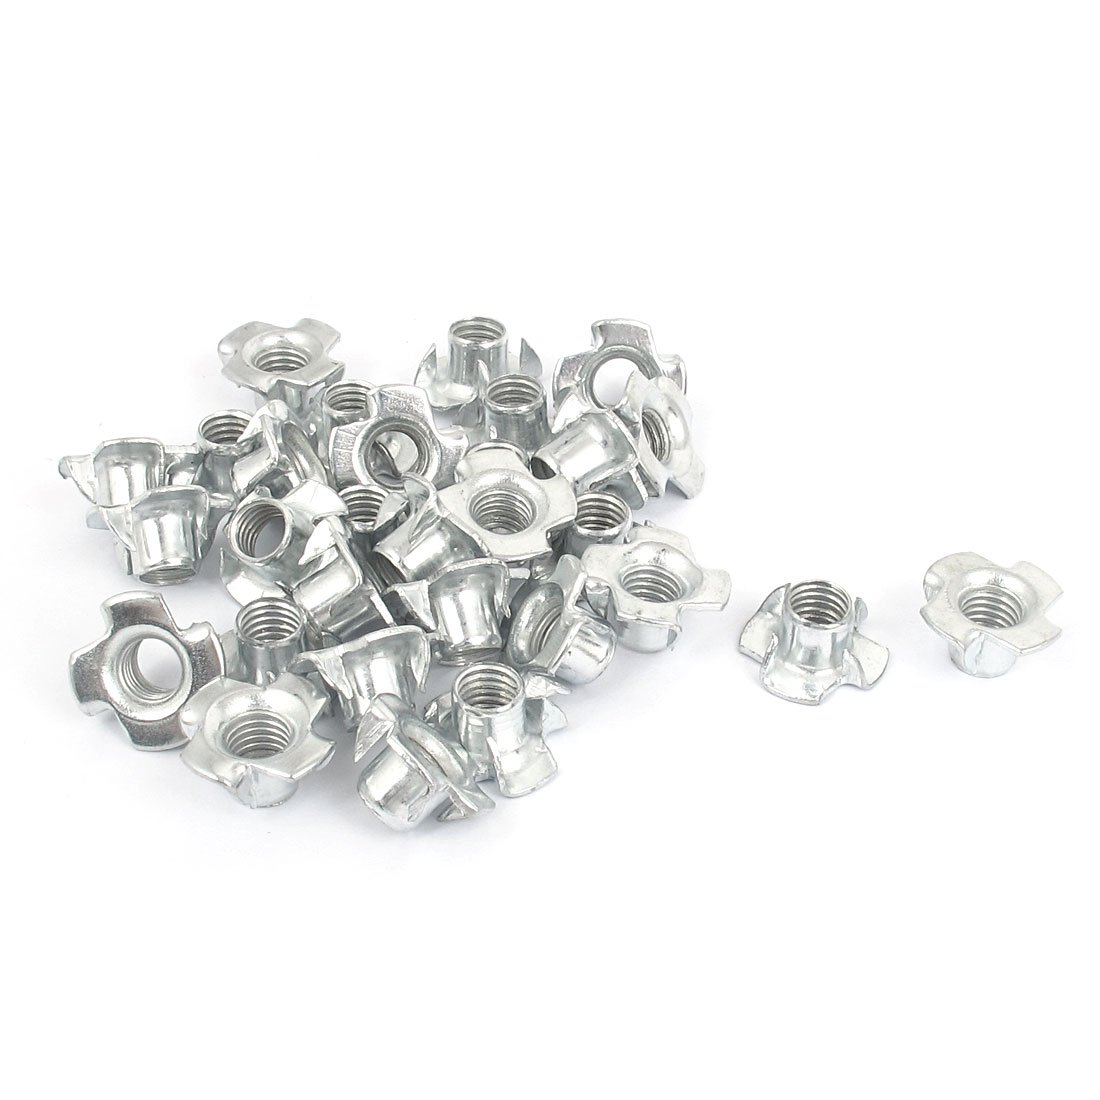 uxcell M8x1.25mm Pack of 30 40% OFF Cheap Sale 4 Pronged Table for New arrival Nut Tee T-Nut